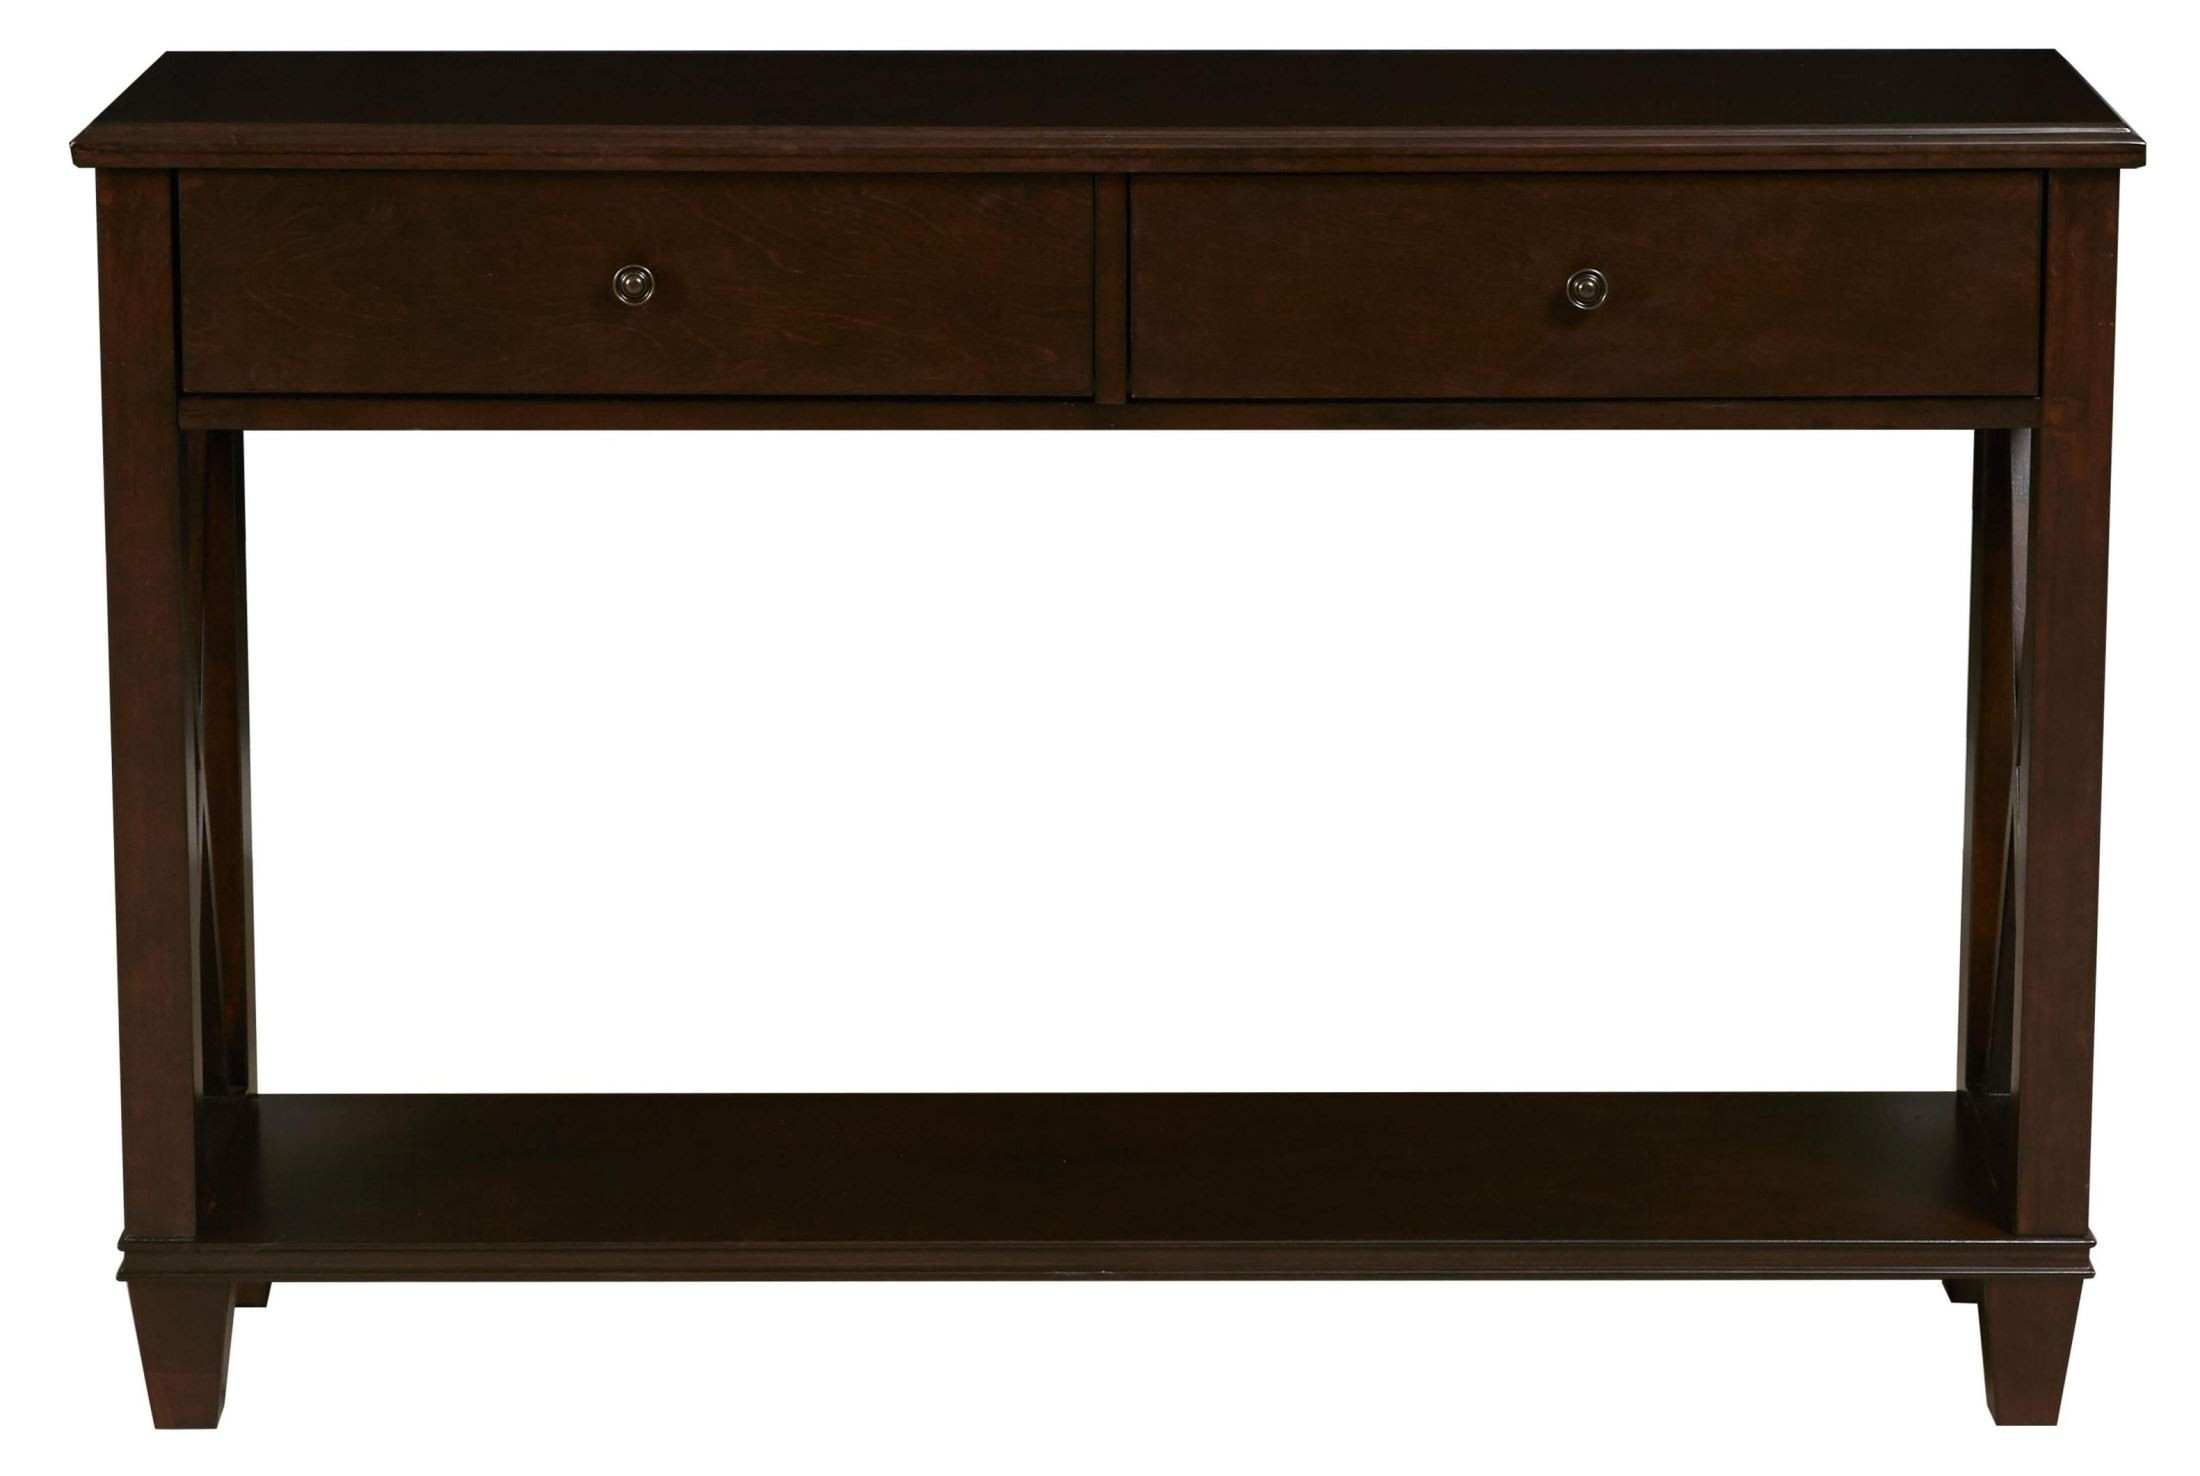 ds 2201 700 dark wood console table from pulaski ds 2201